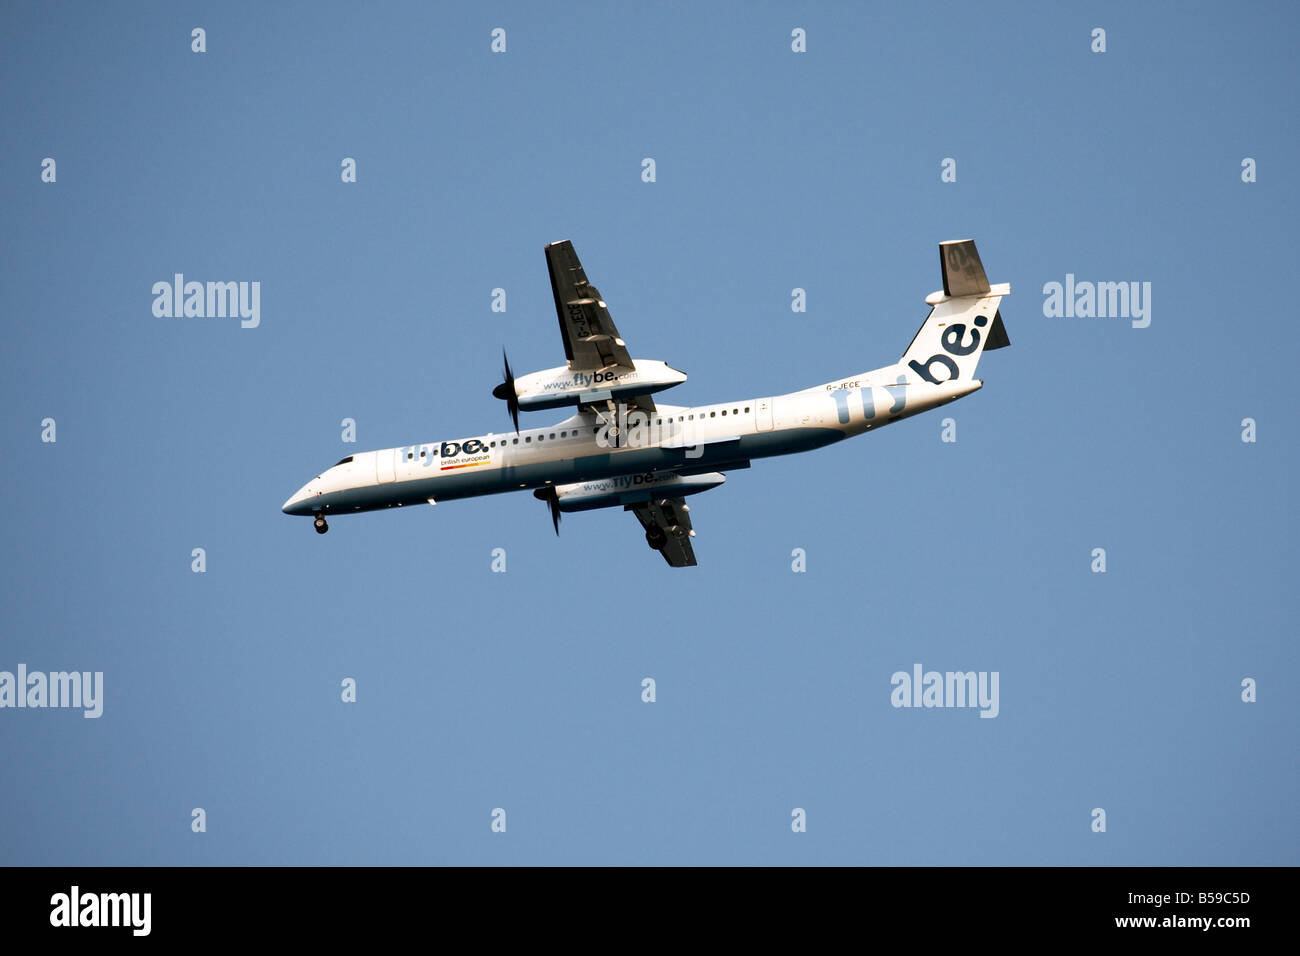 G JECE flybe fly be british european aircraft landing at airport Southampton England UK - Stock Image